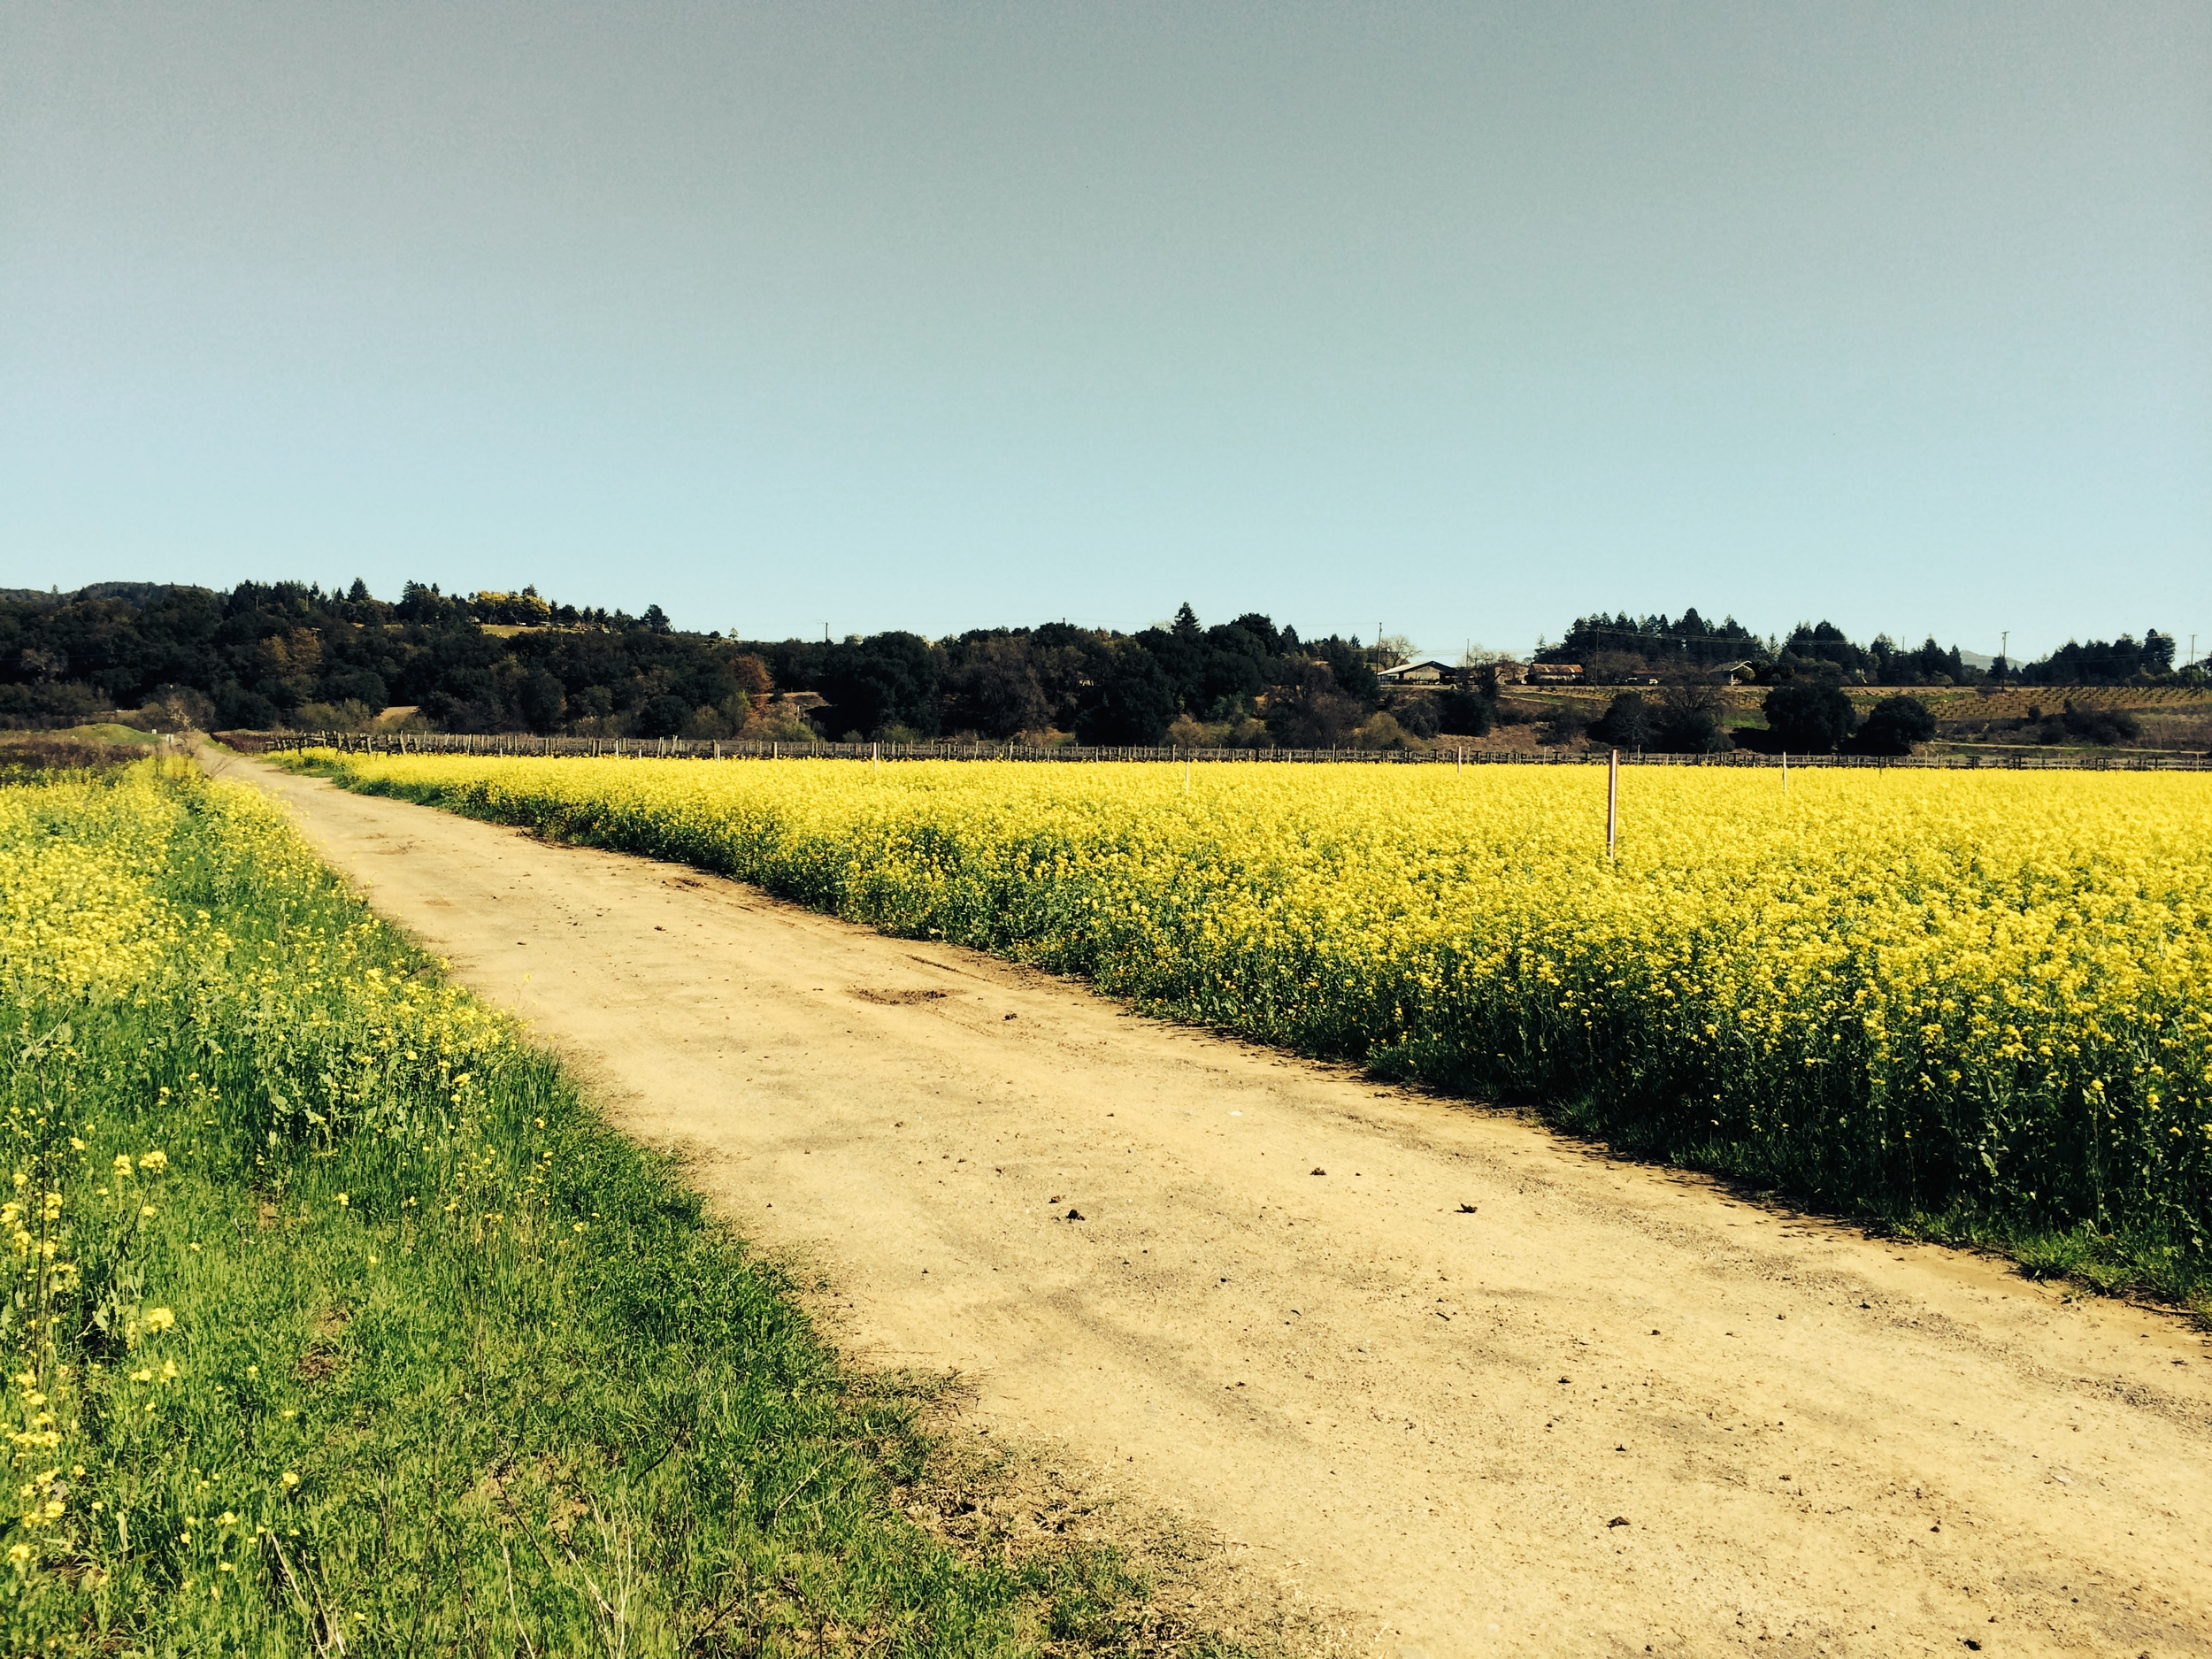 The raw field of Mustard. What you can't see is all the trash and metal hiding under the field.